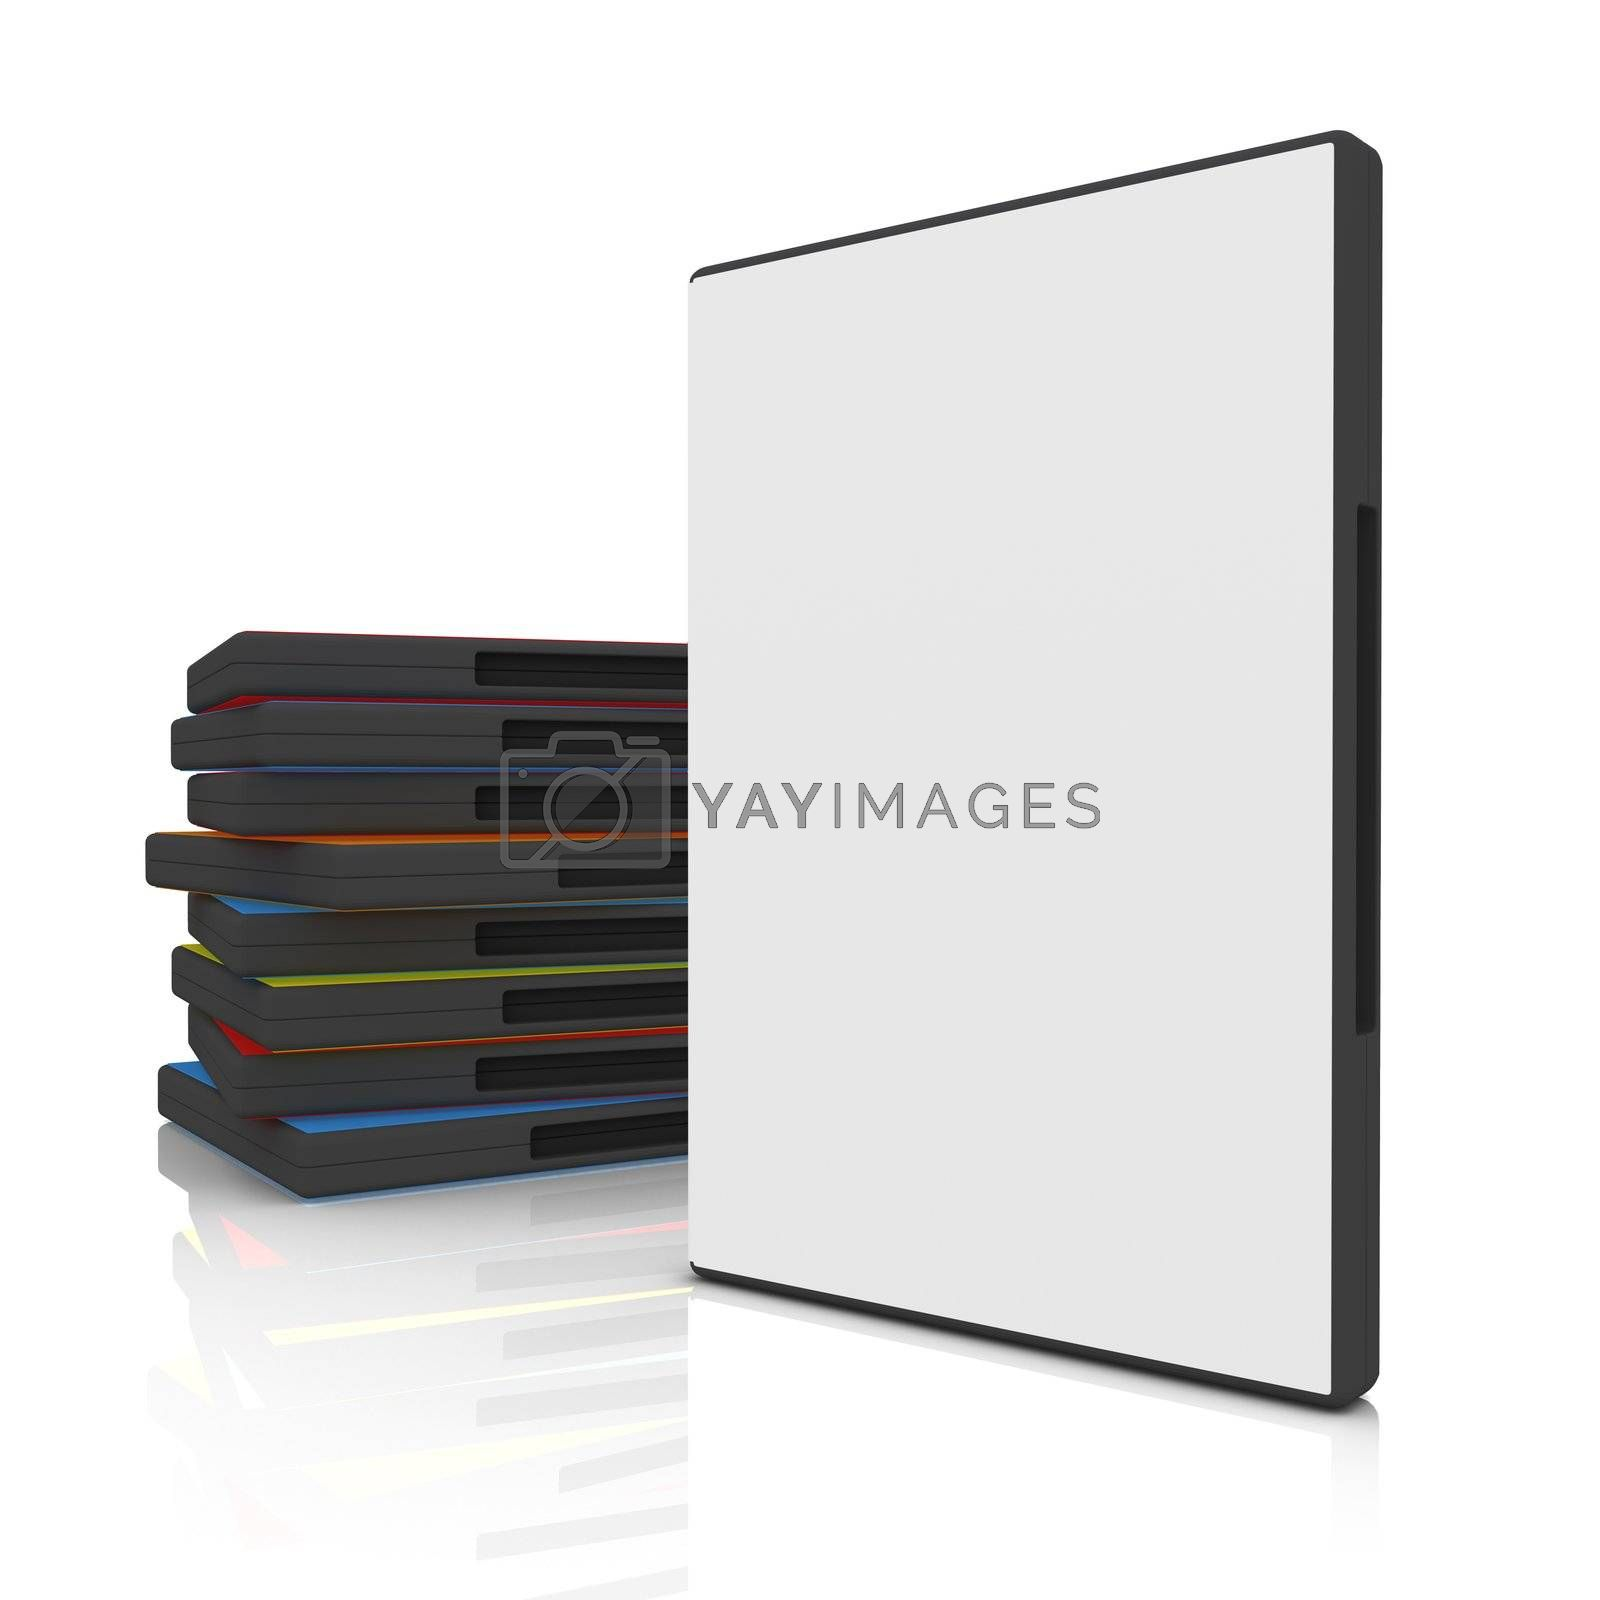 Royalty free image of DVD Case by 3pod